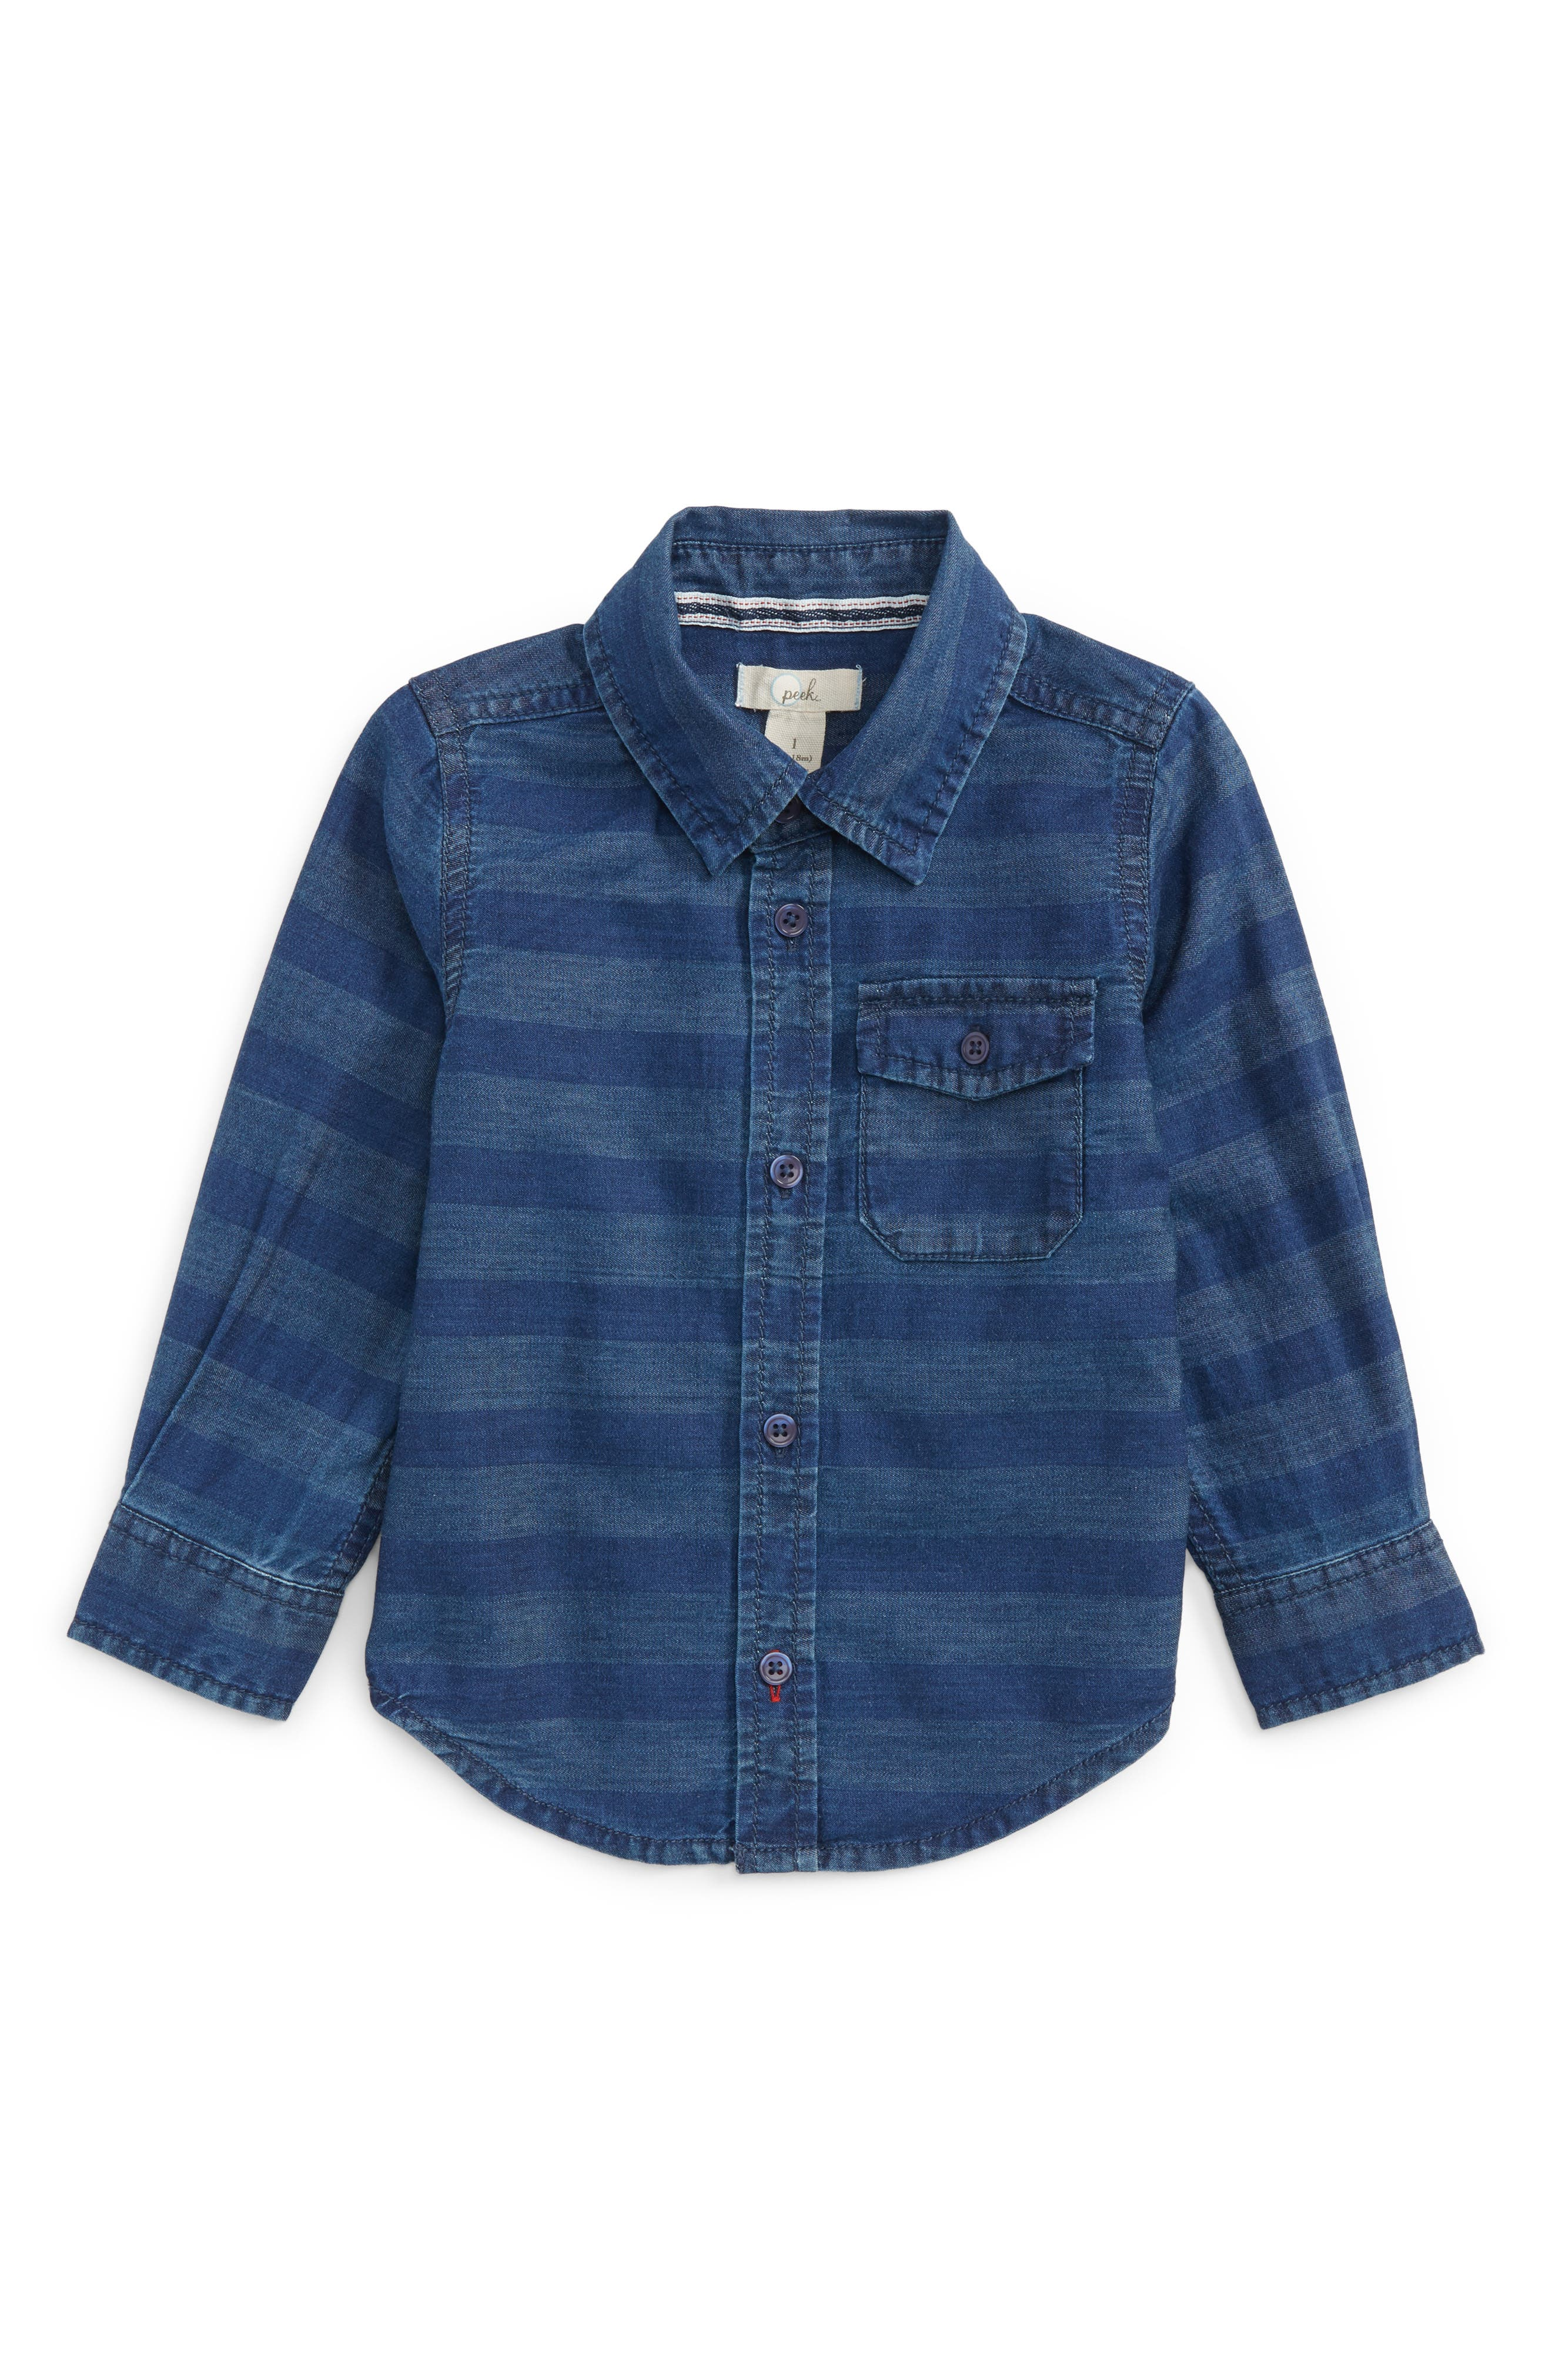 Peek Aiden Stripe Chambray Shirt (Baby Boys)